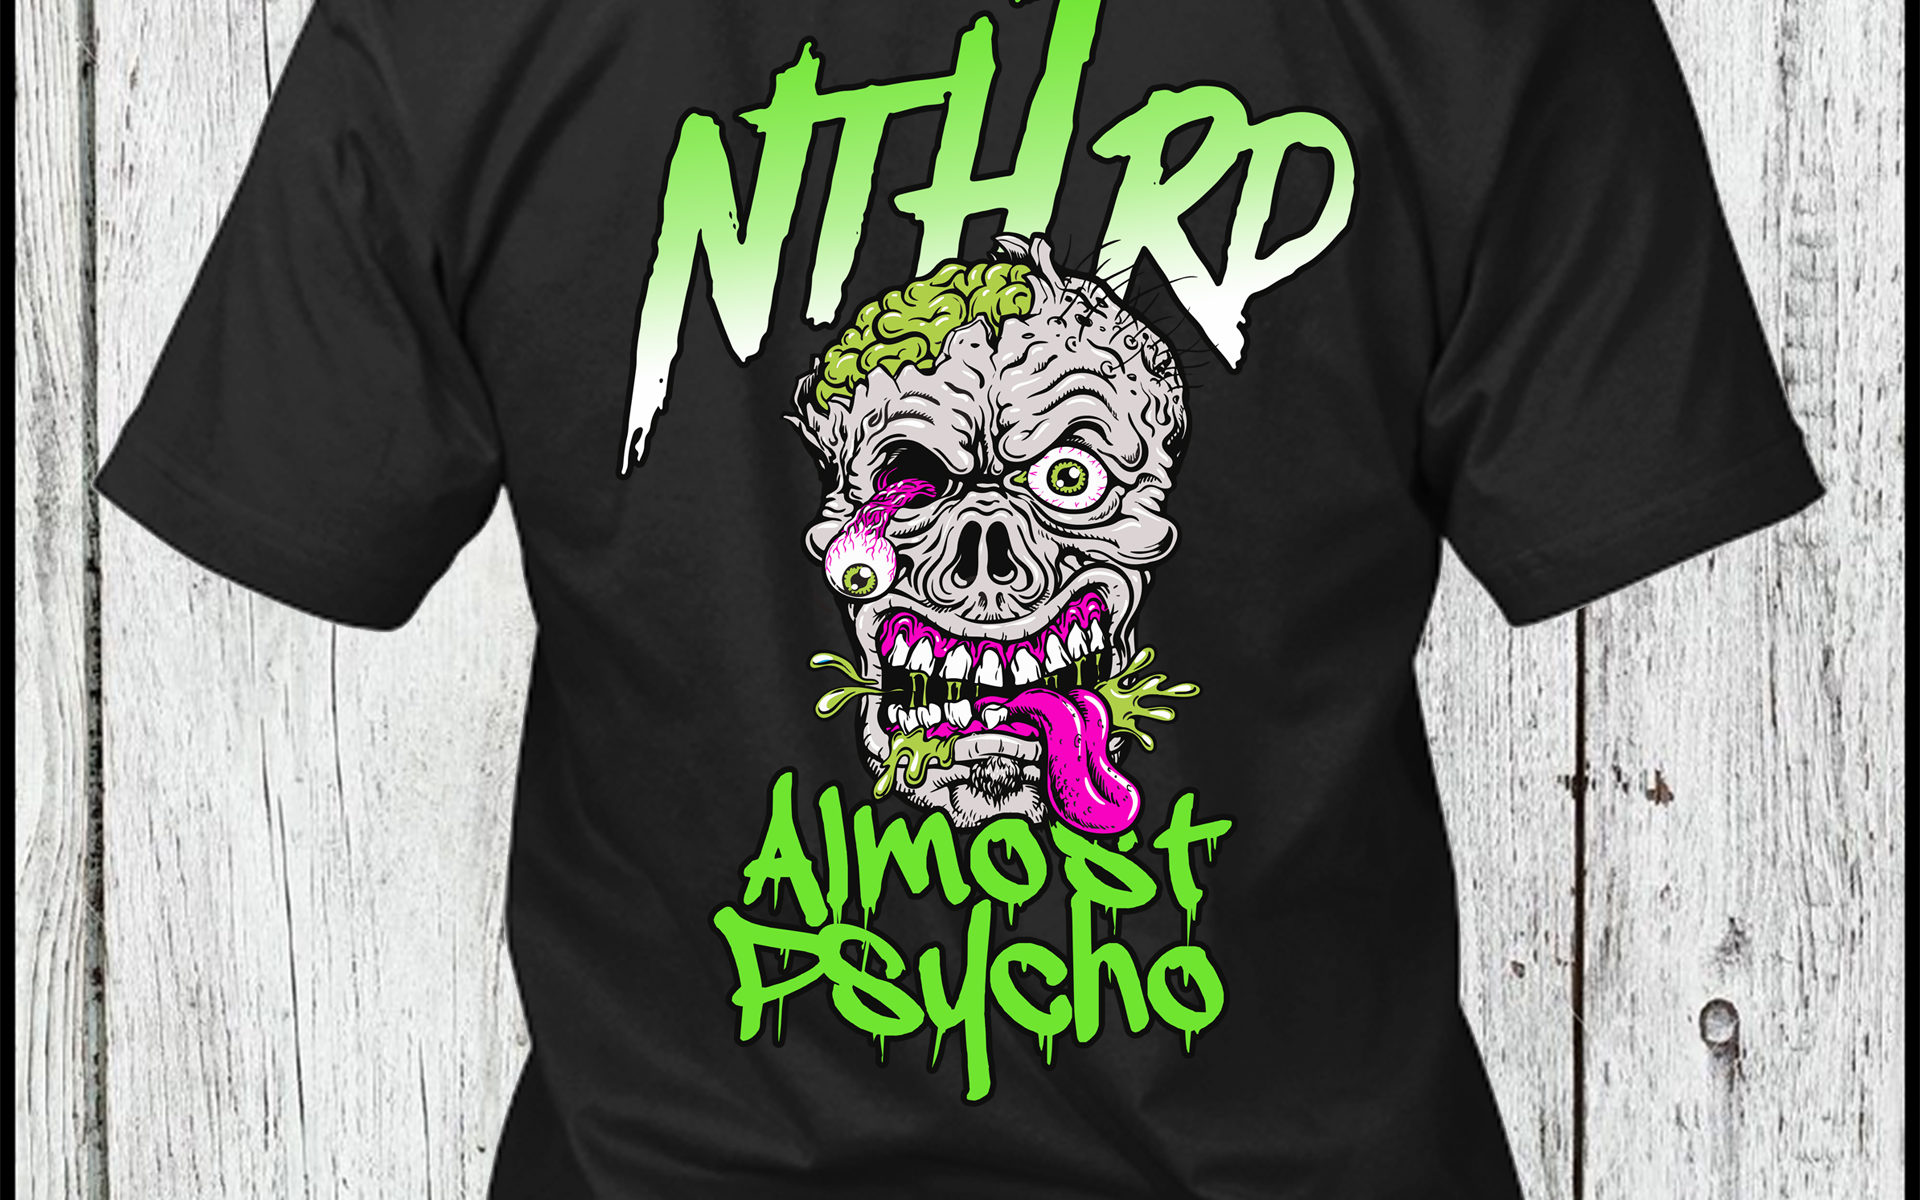 Nth Rd band black tshirt back